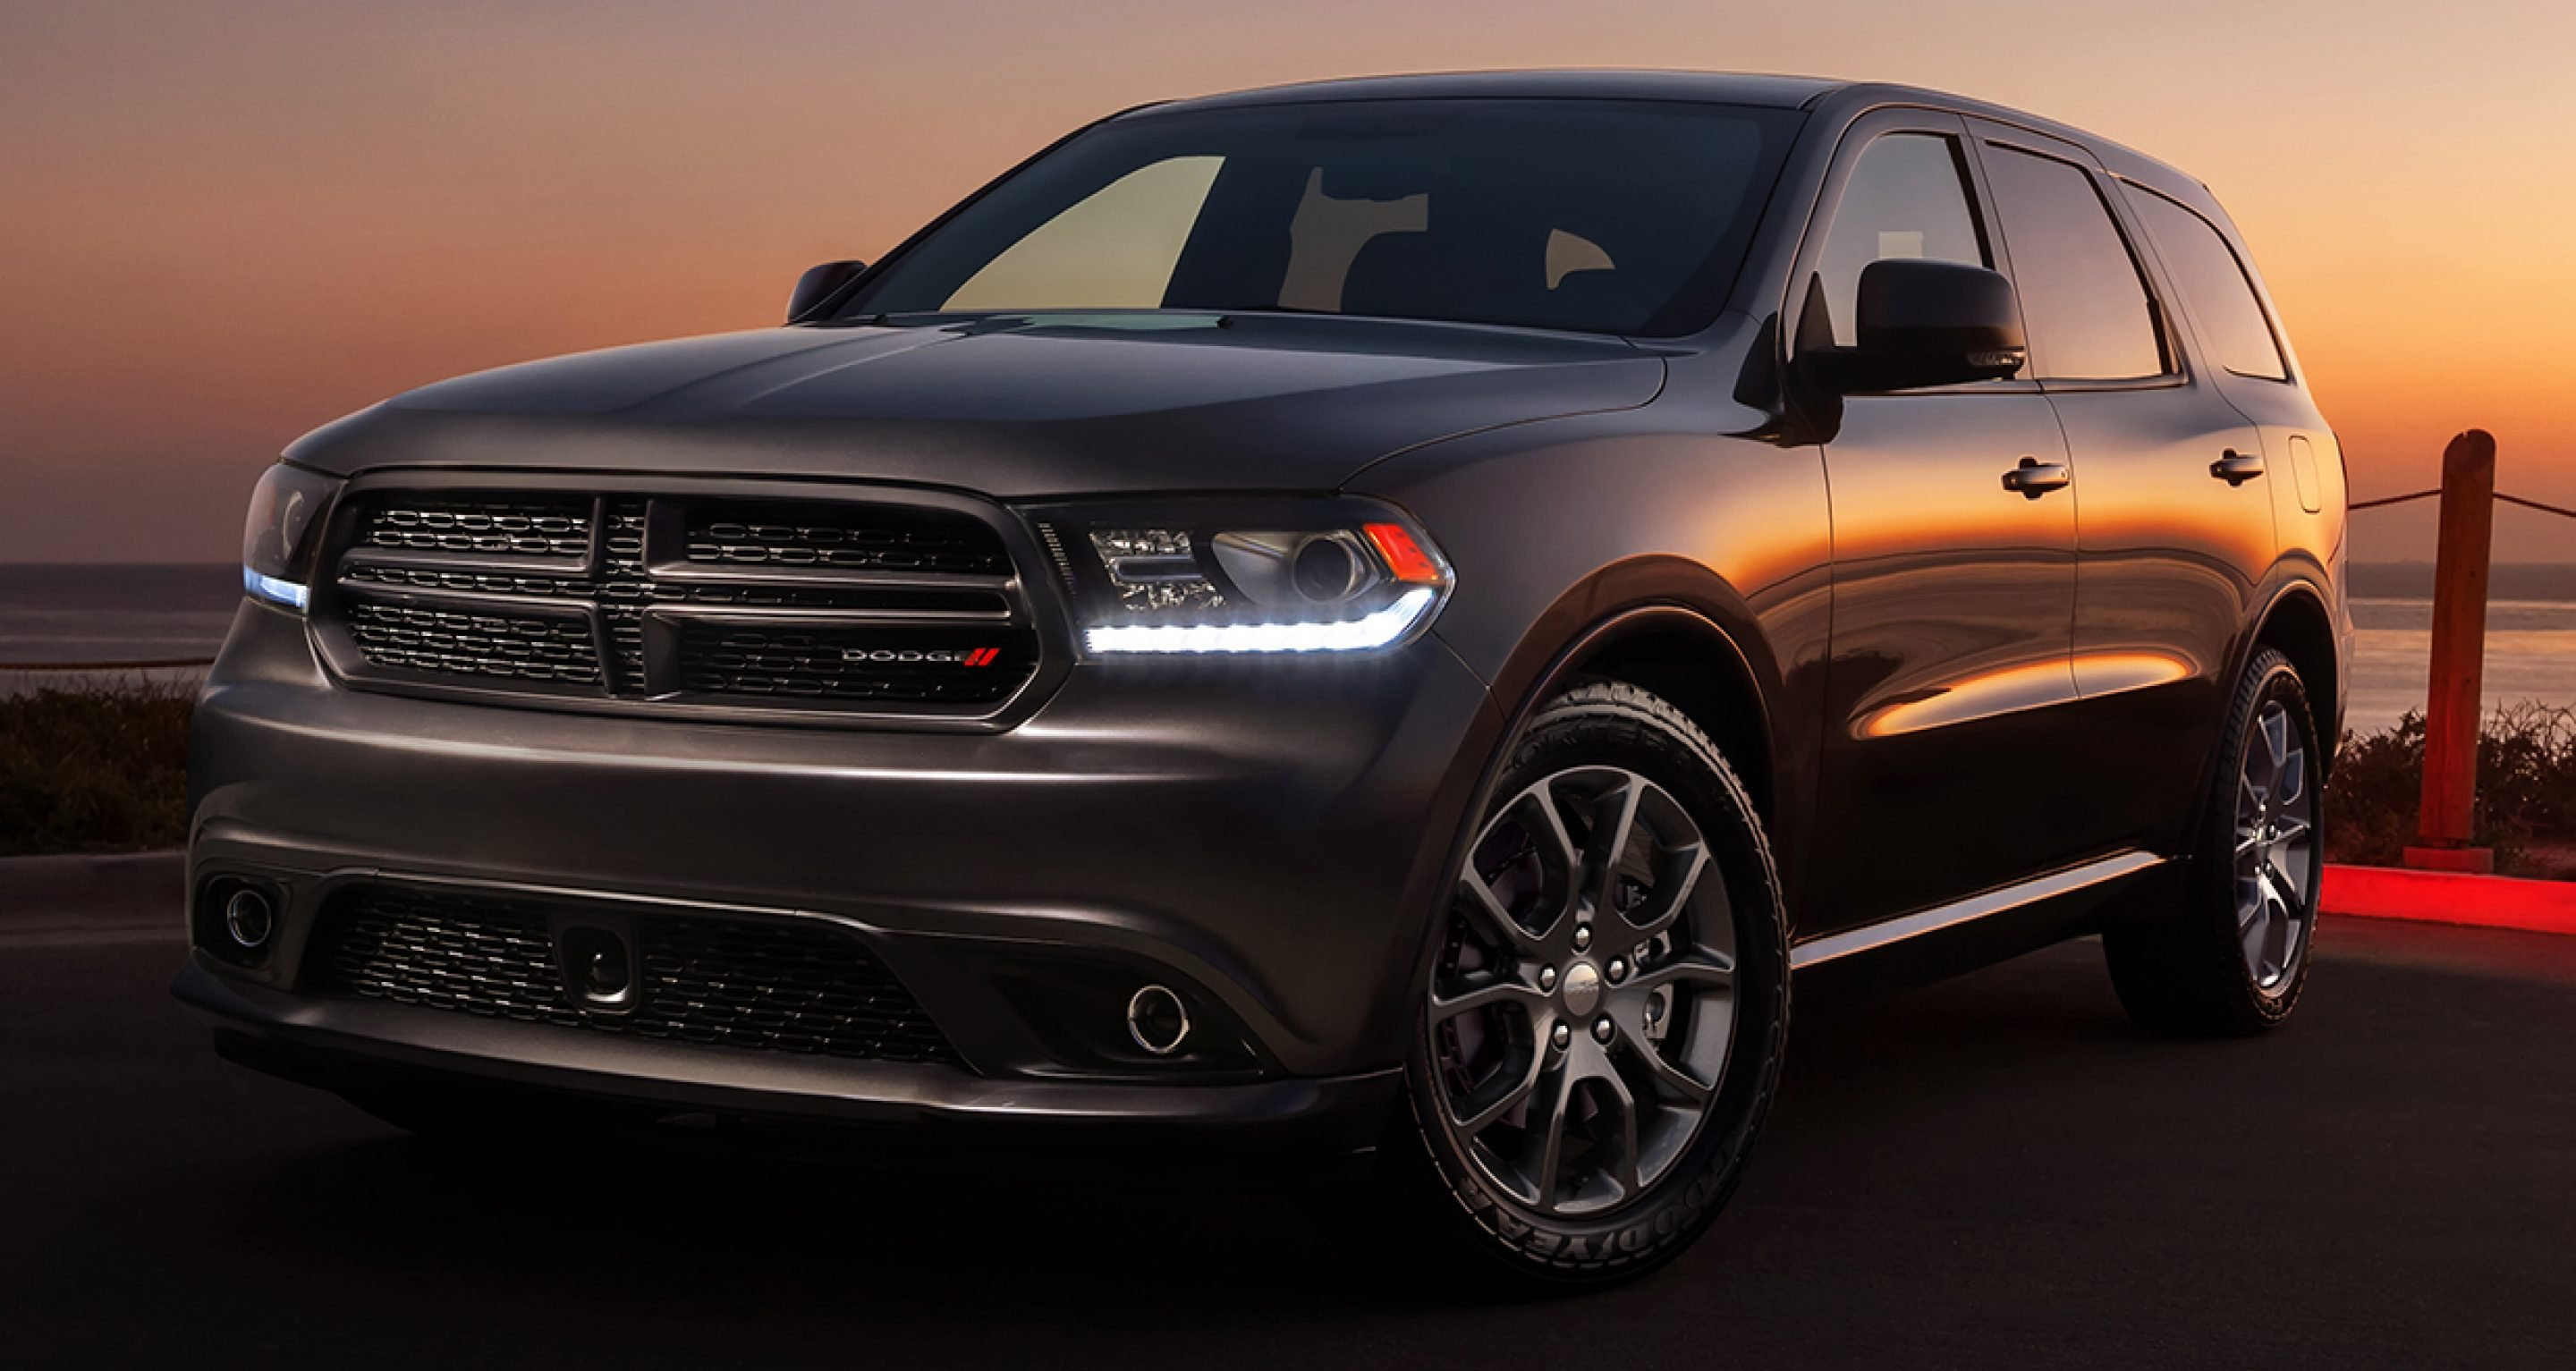 2017 Dodge Durango at night